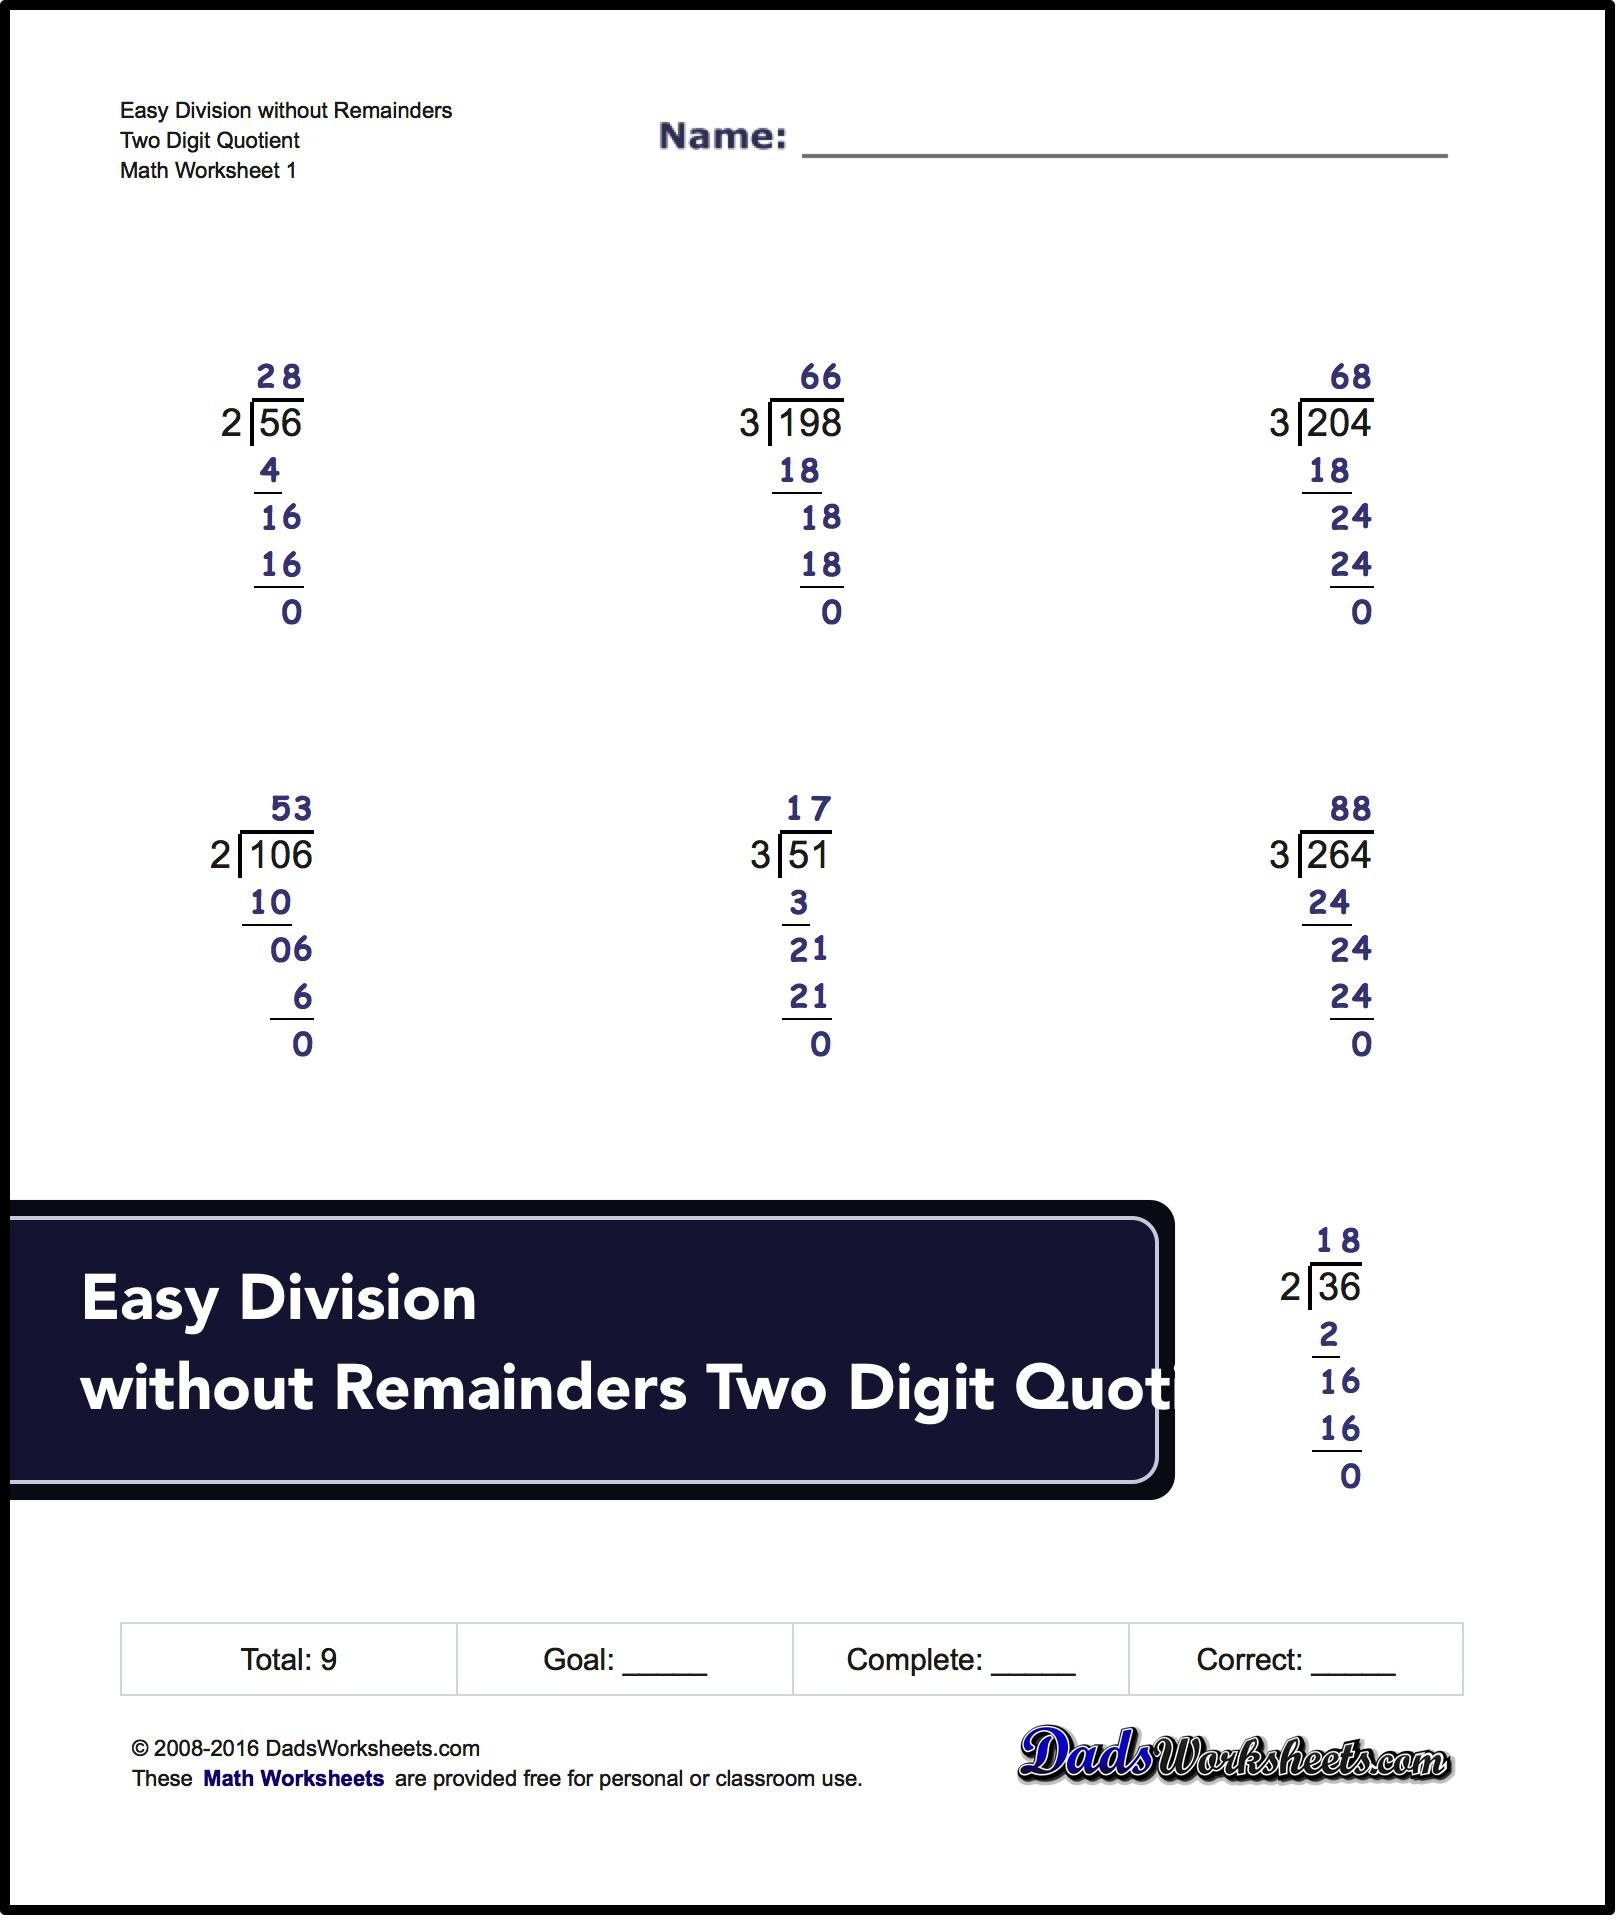 Links To Free Math Worksheets For Long Division Problems